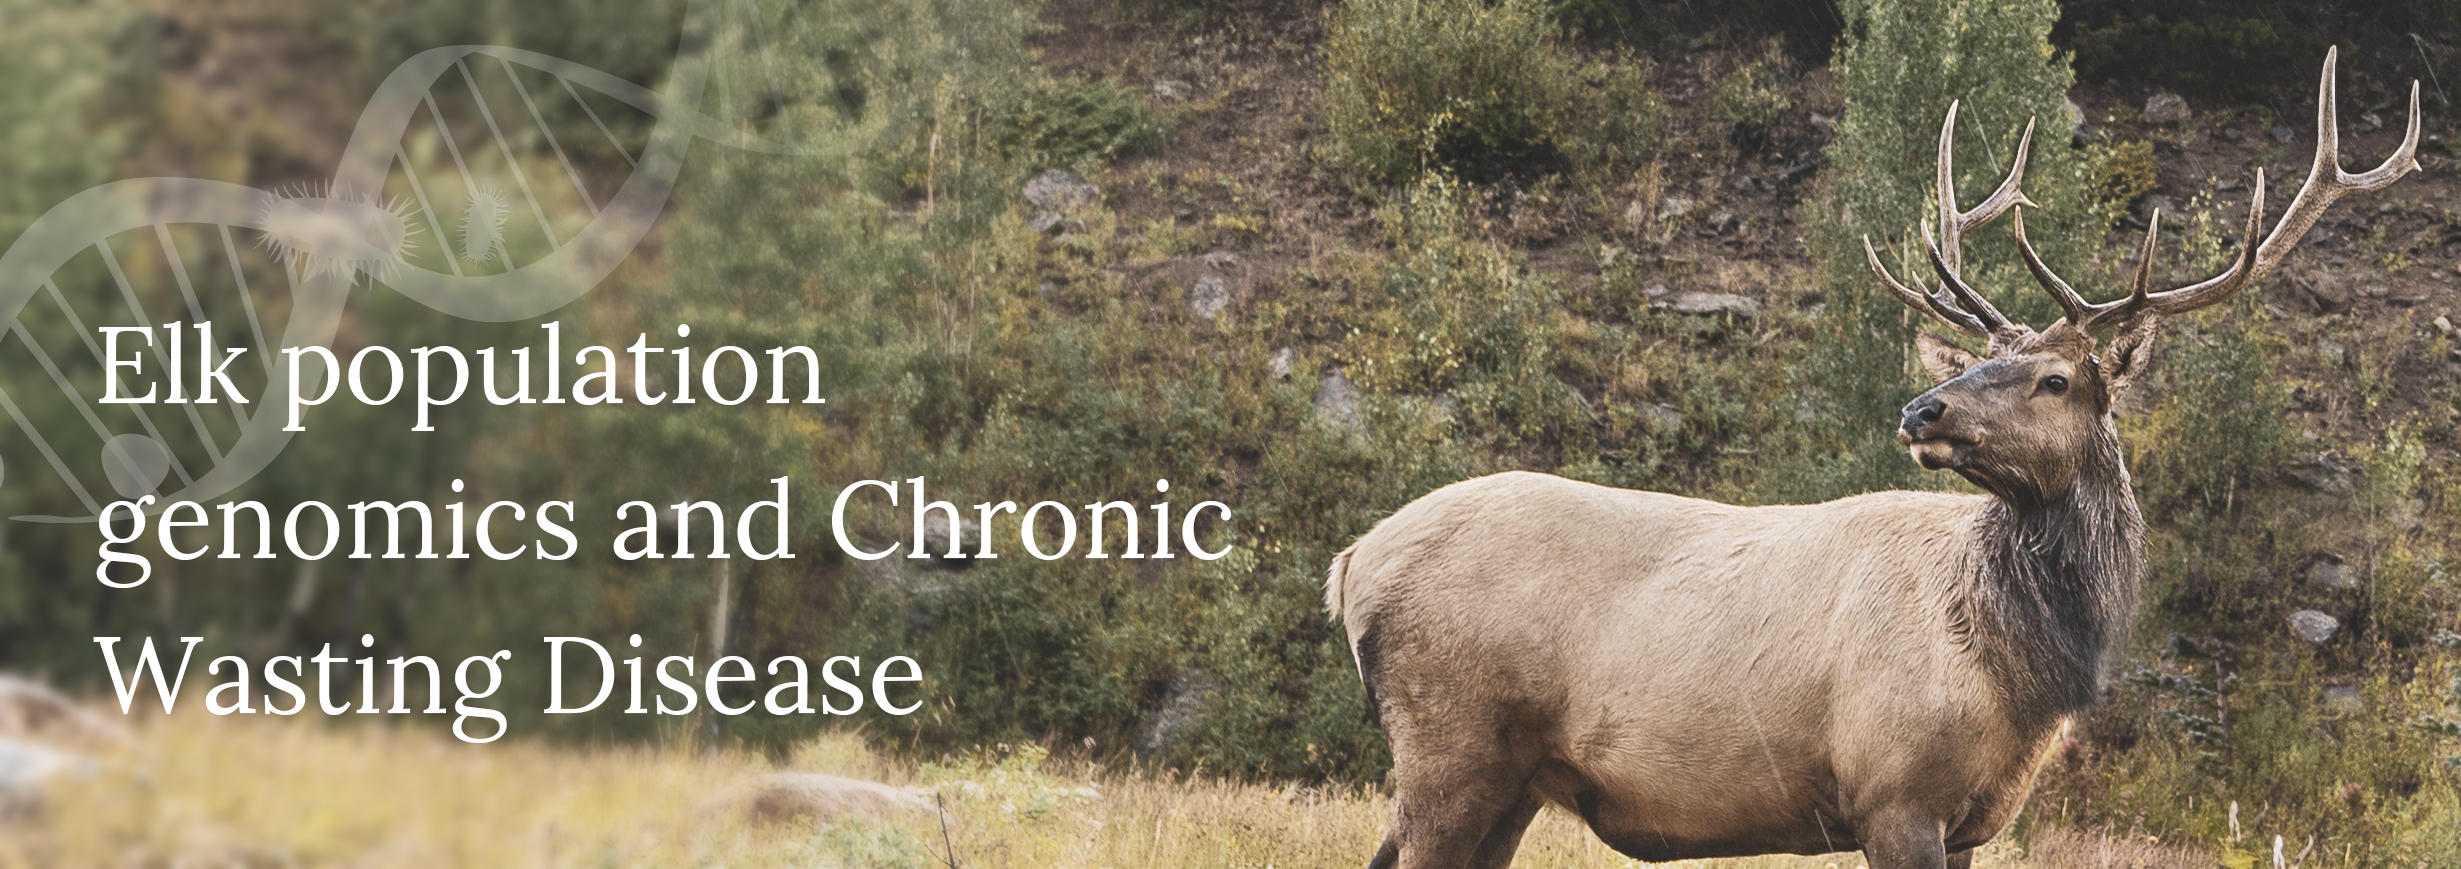 Elk in mountains with Elk population genomics and Chronic Wasting Disease text